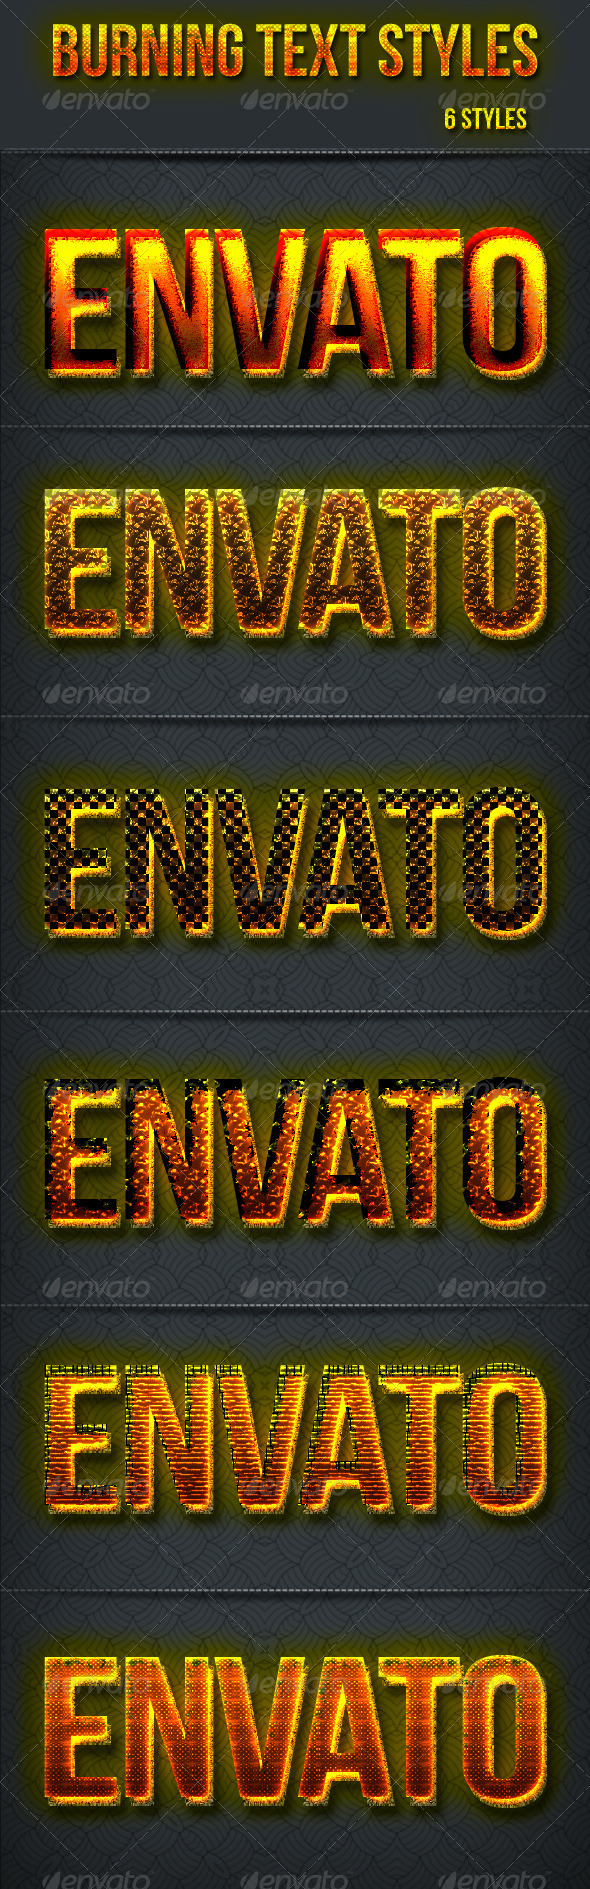 GraphicRiver Burning Text Styles 7176460